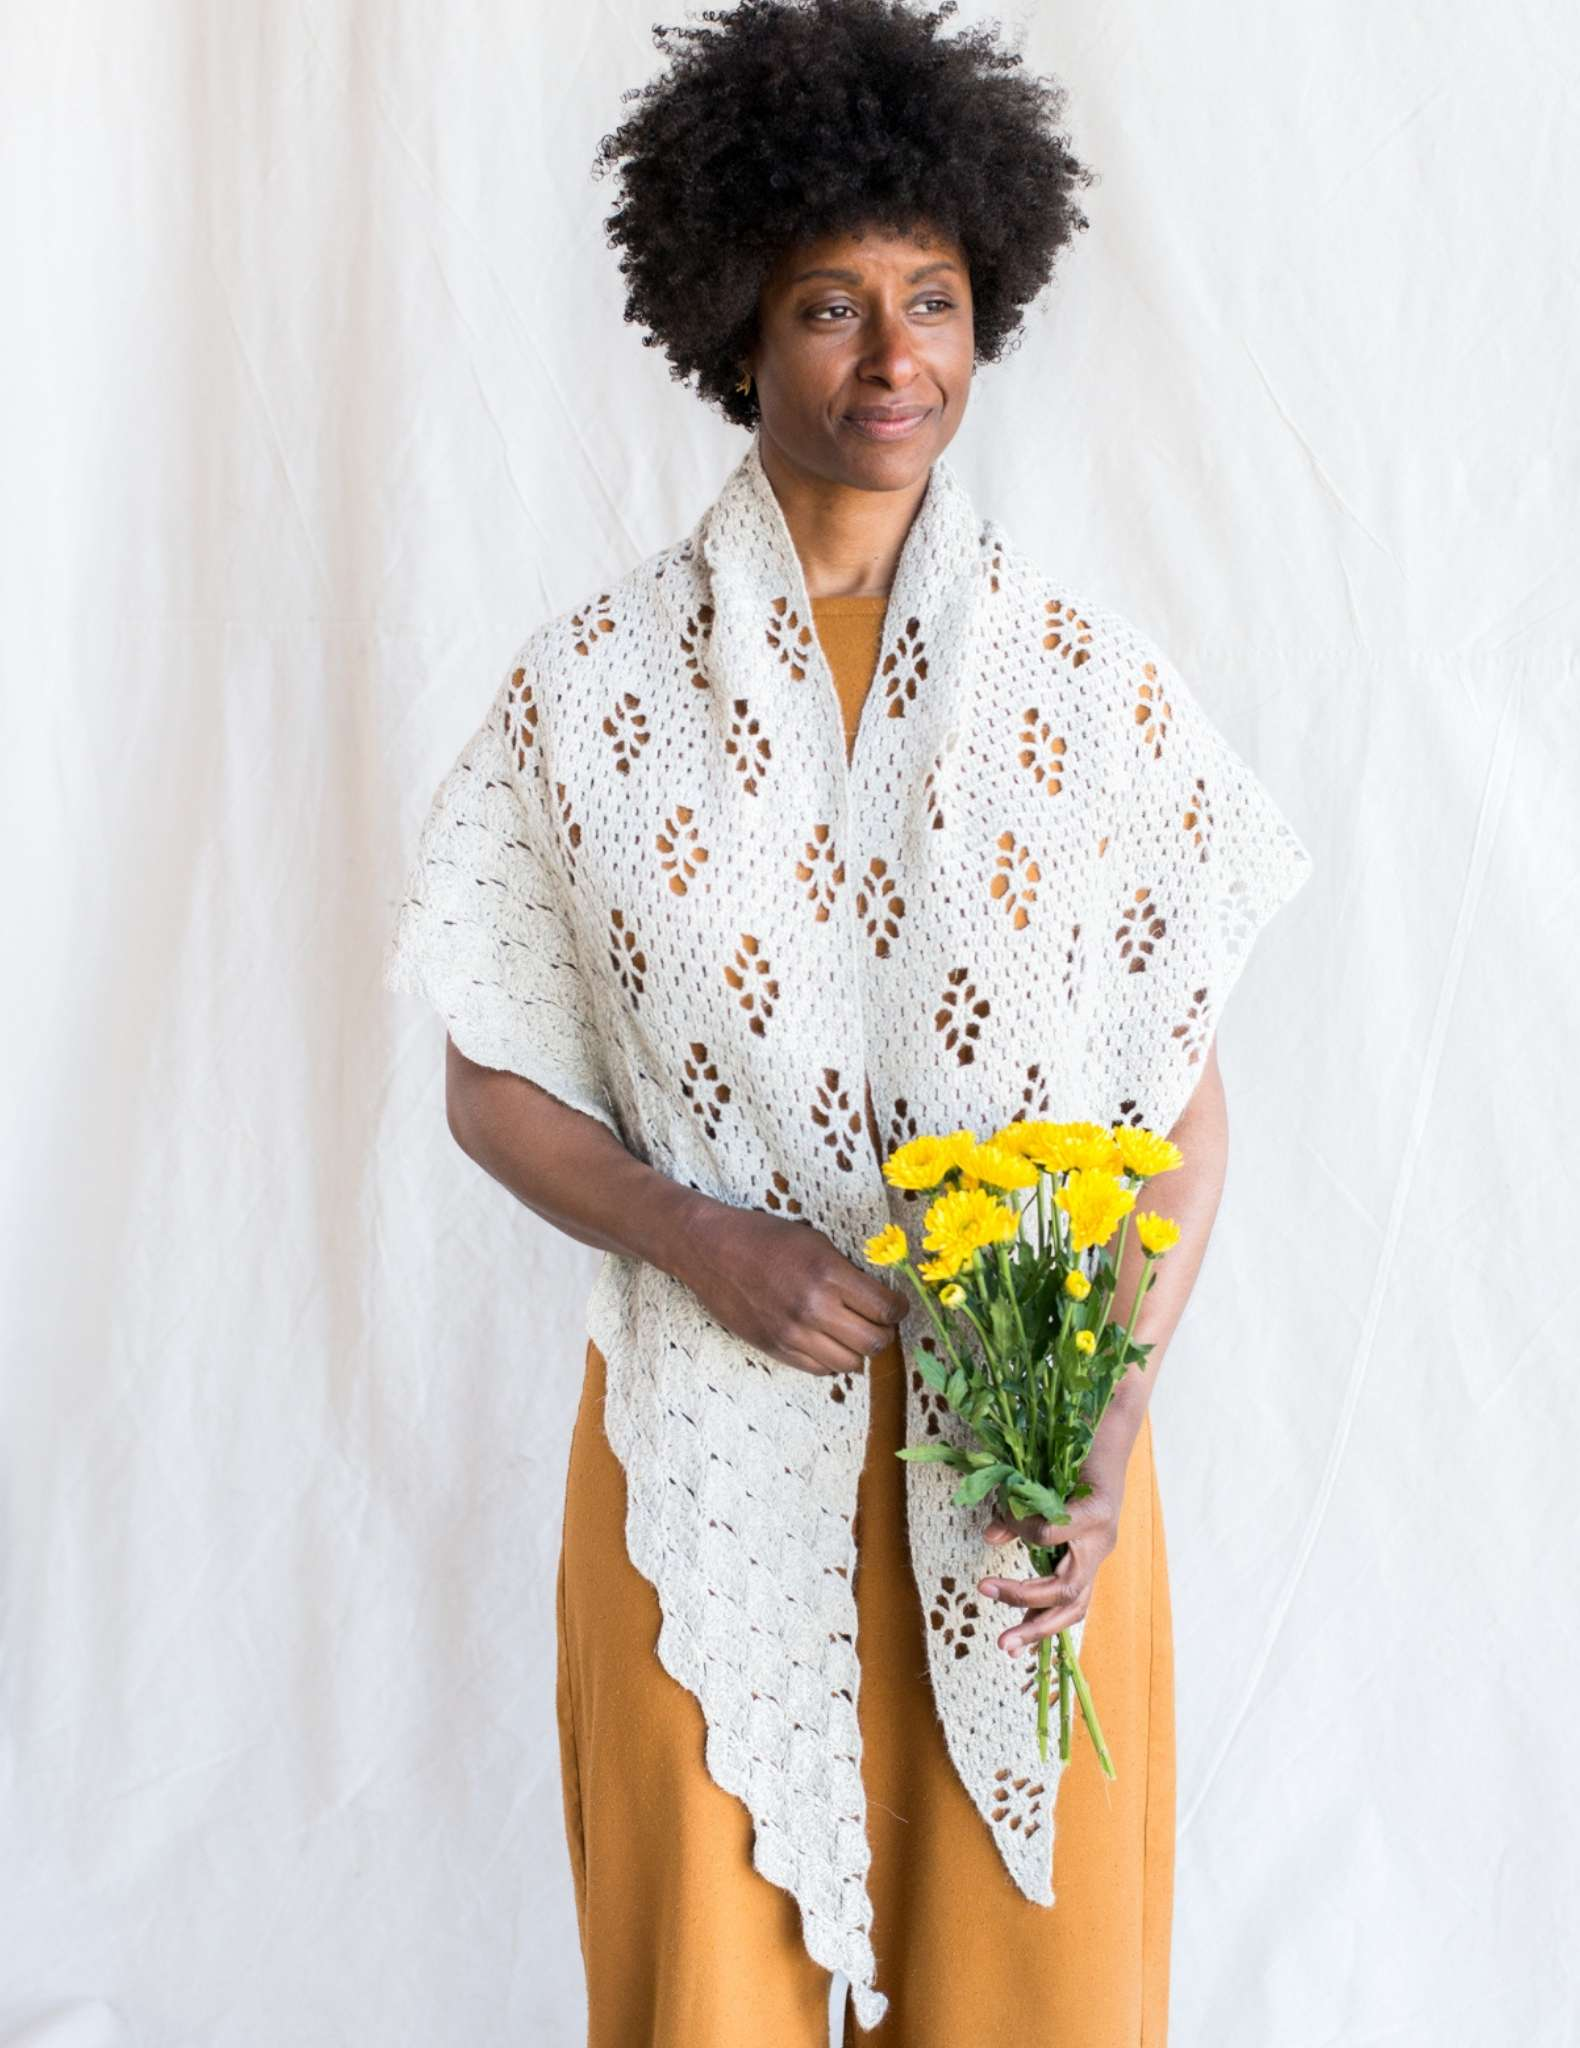 A large crocheted white shawl with lace details is worn by a black woman holding a bunch of yellow flowers. The model faces the camera with the corners of the shawl draped over each shoulder.